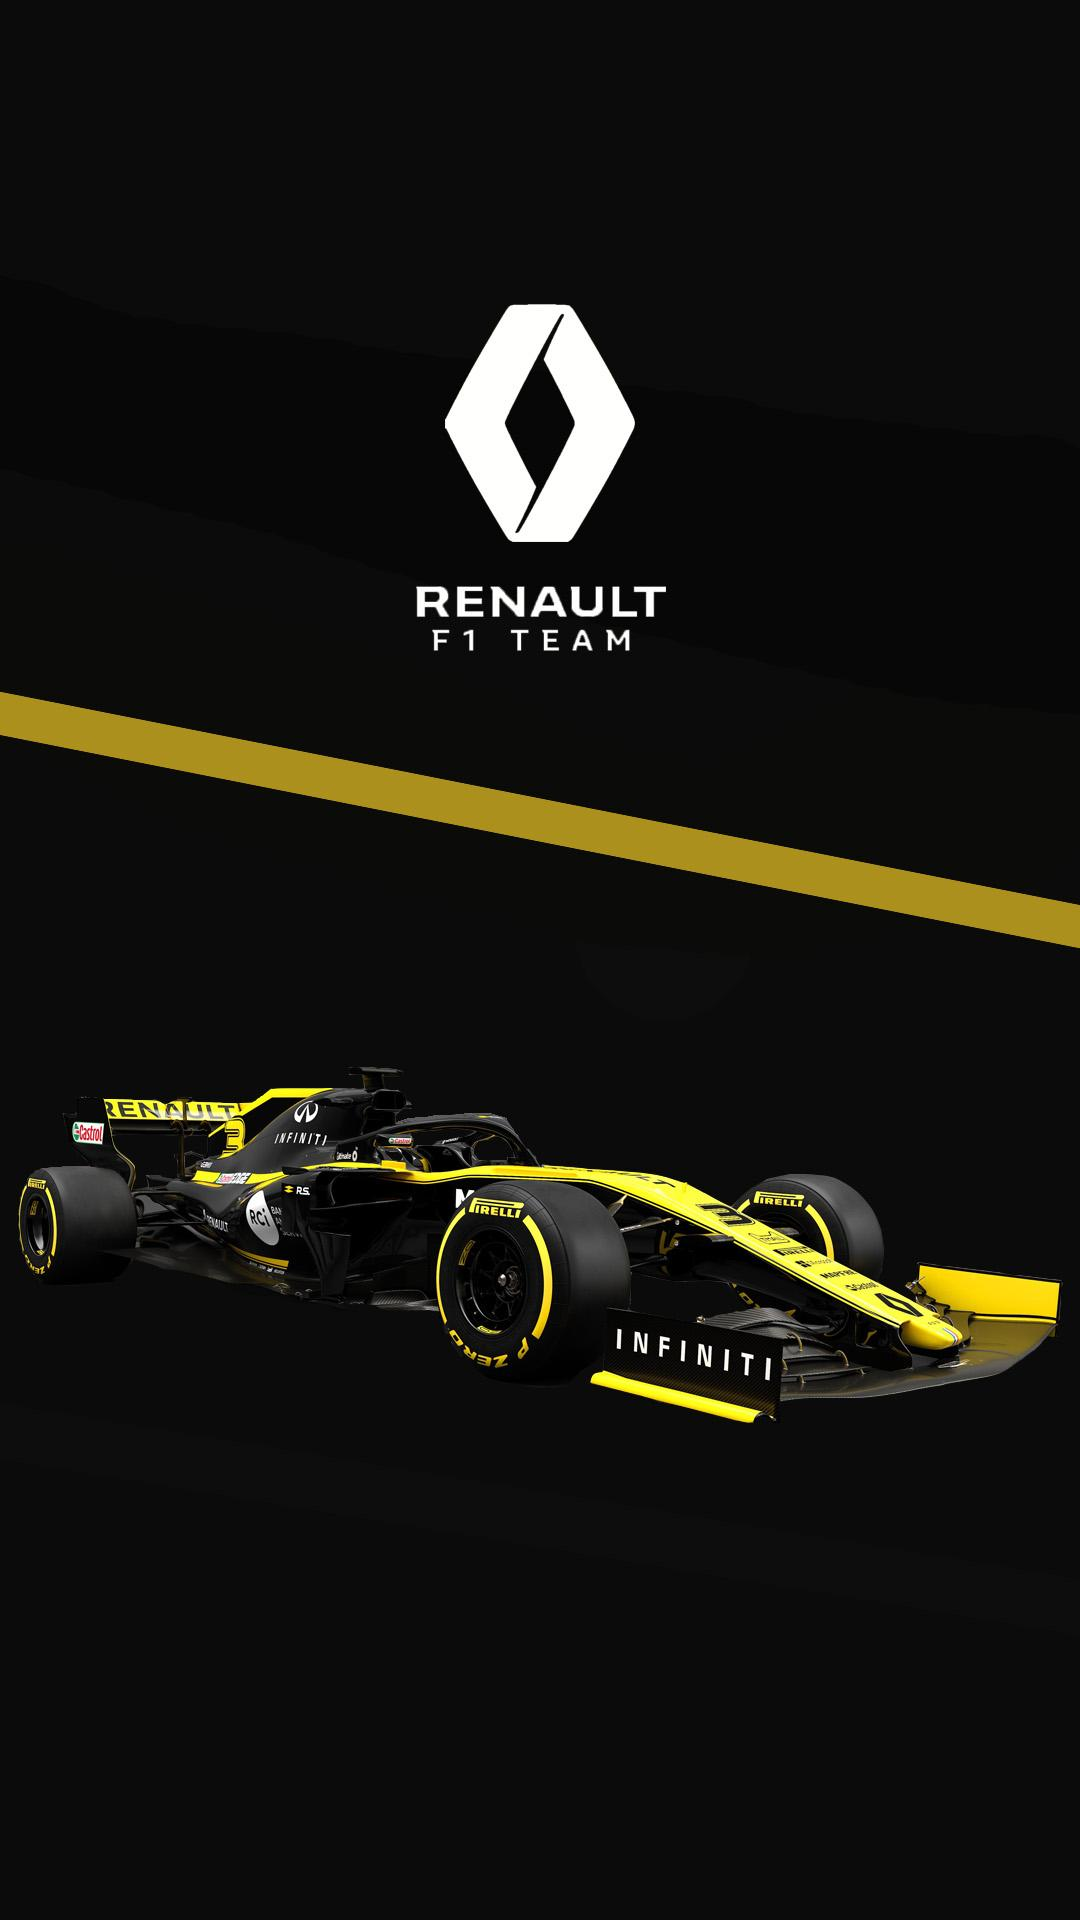 Renault 2019 phone wallpaper I made formula1 1080x1920